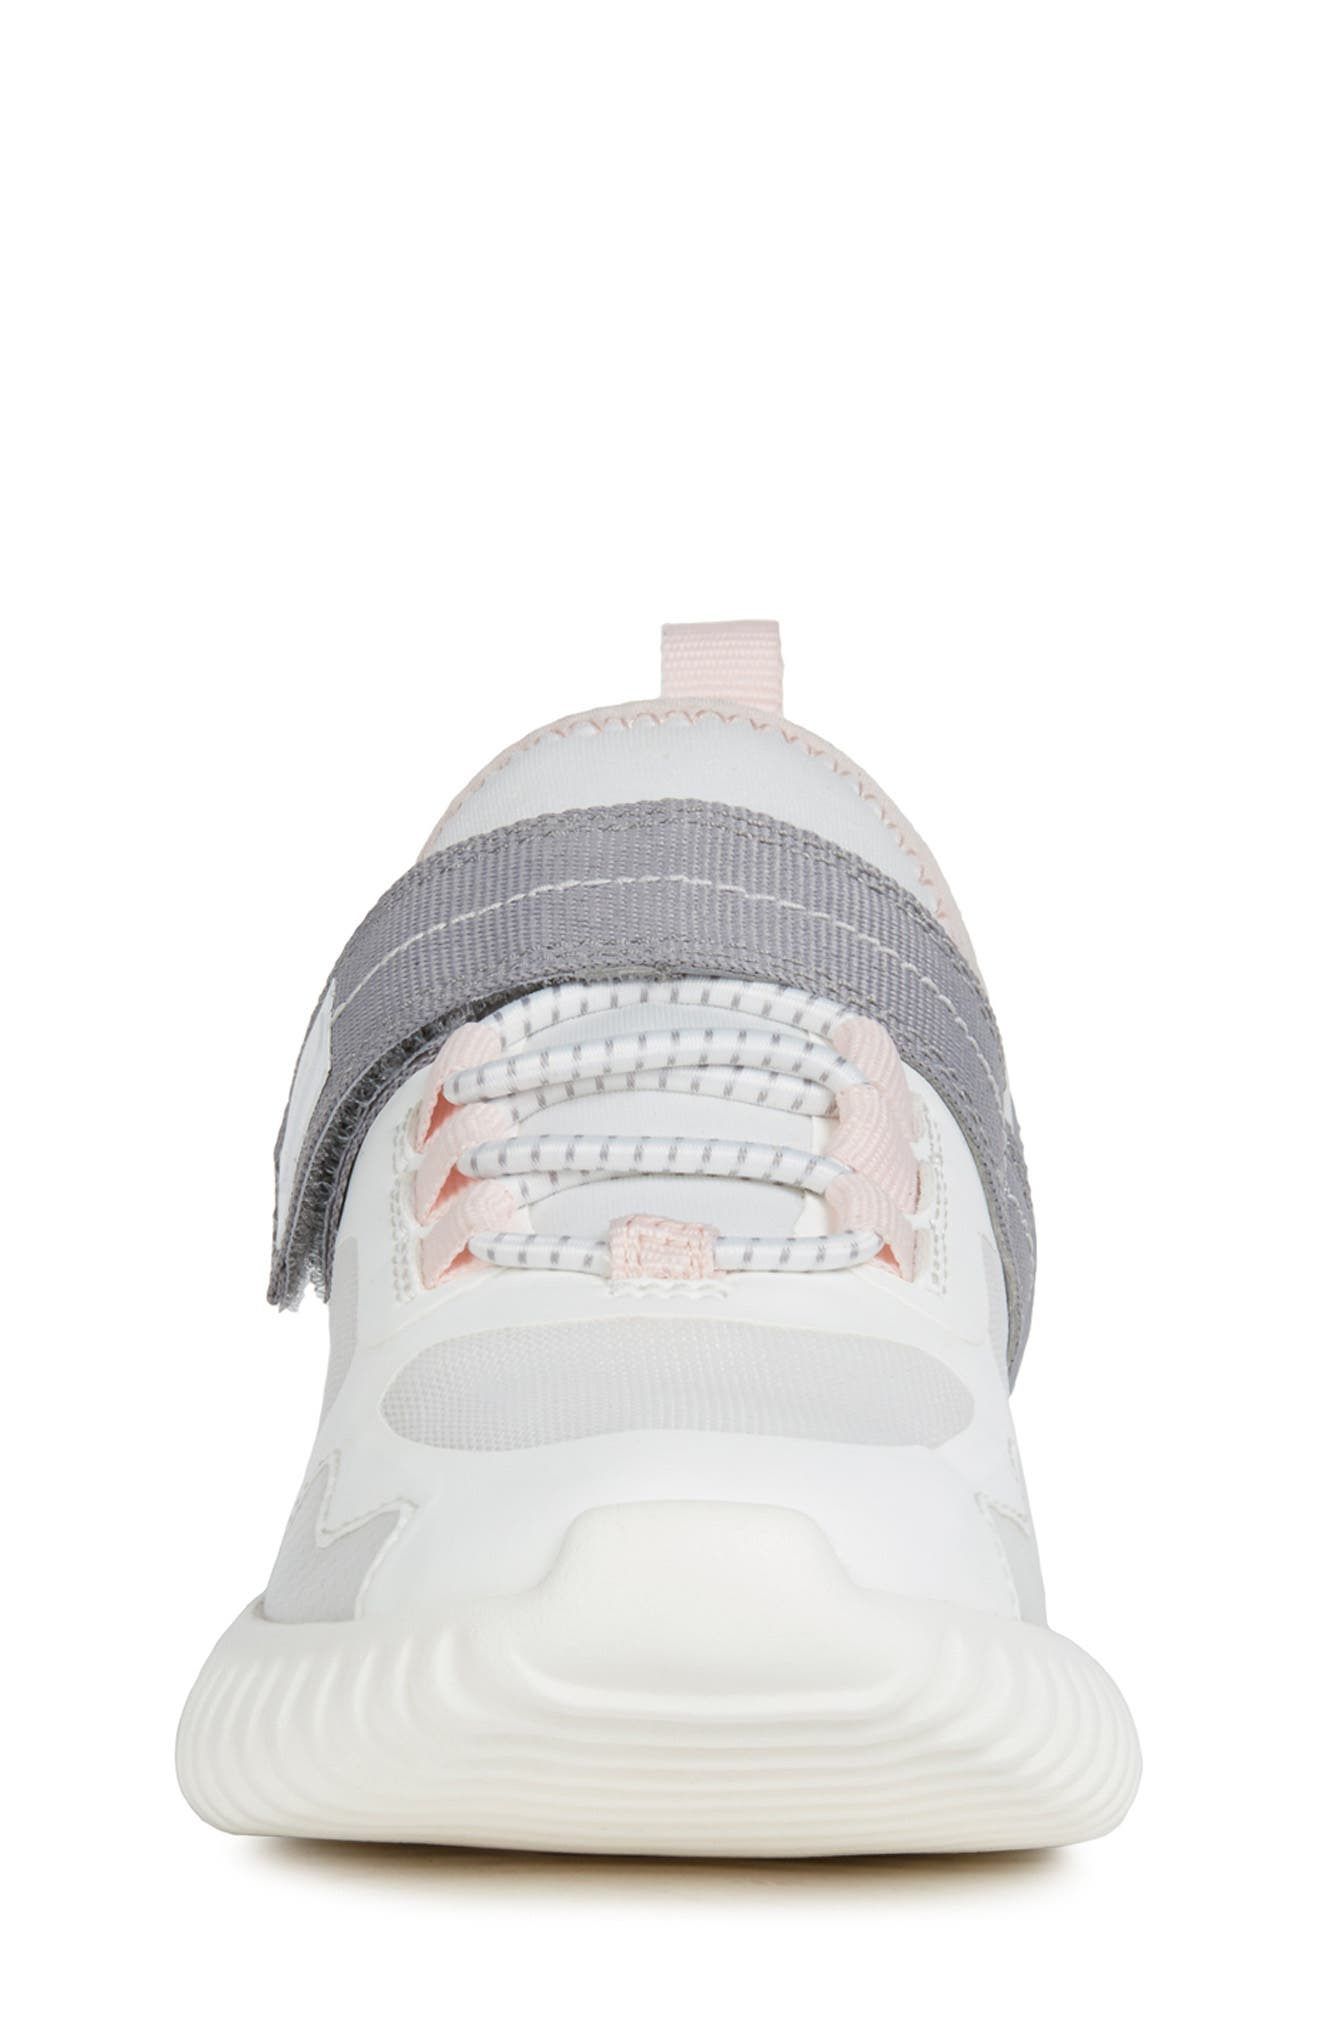 Waviness Sneaker,                             Alternate thumbnail 4, color,                             WHITE/ GREY